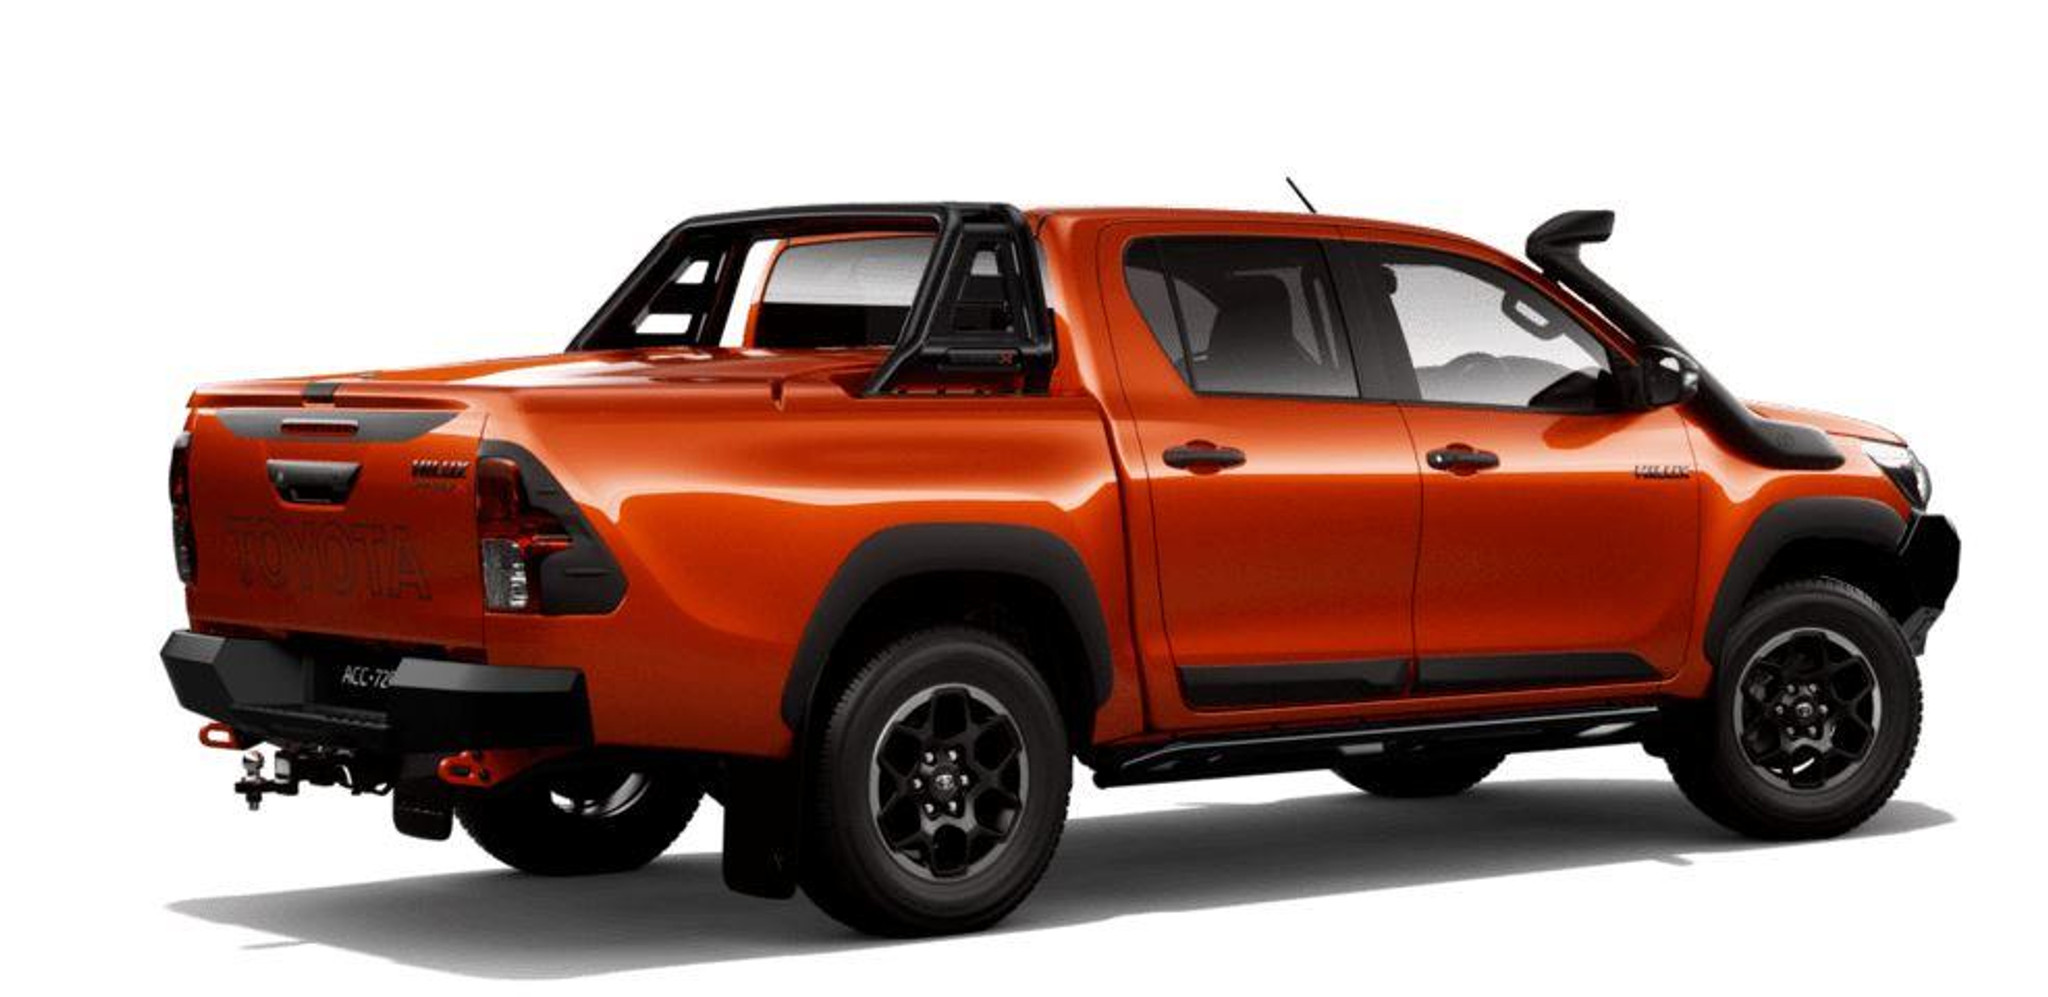 Rugged Series Hard Tonneau Cover Inferno Orange 4r8 Part No Topzq7089900ee Phil Gilbert Toyota